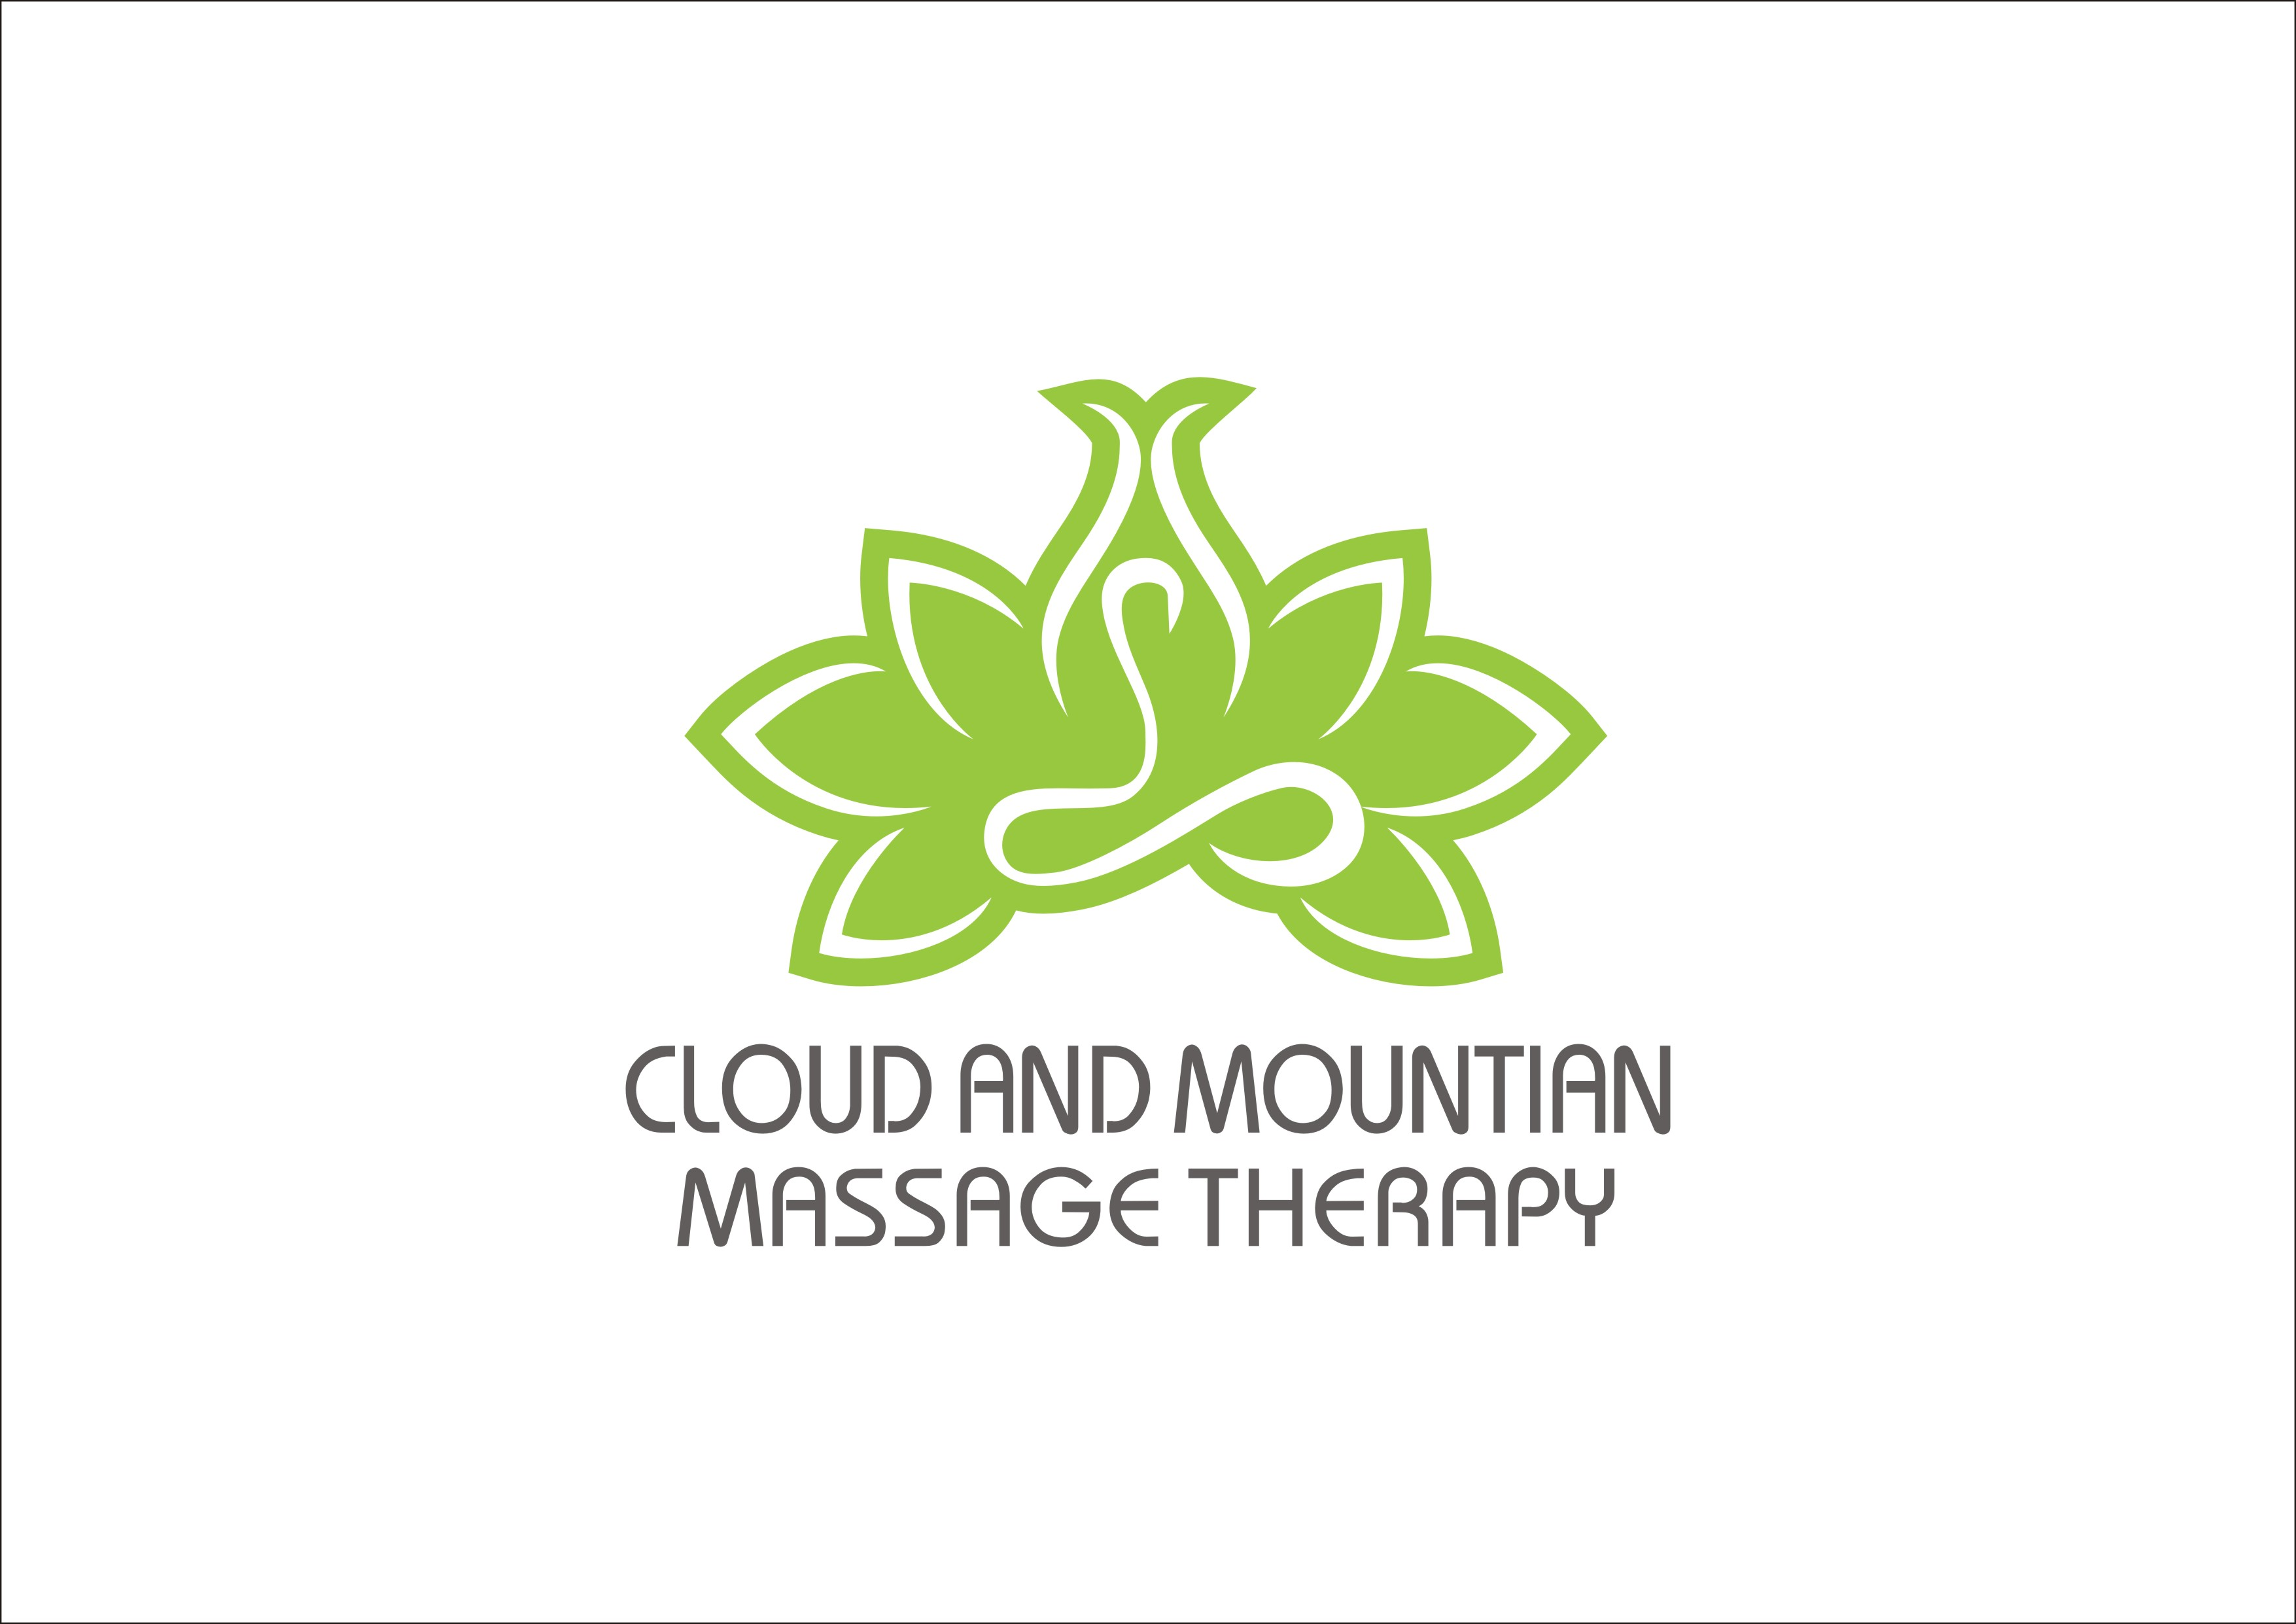 cloud and mountian massage therapy